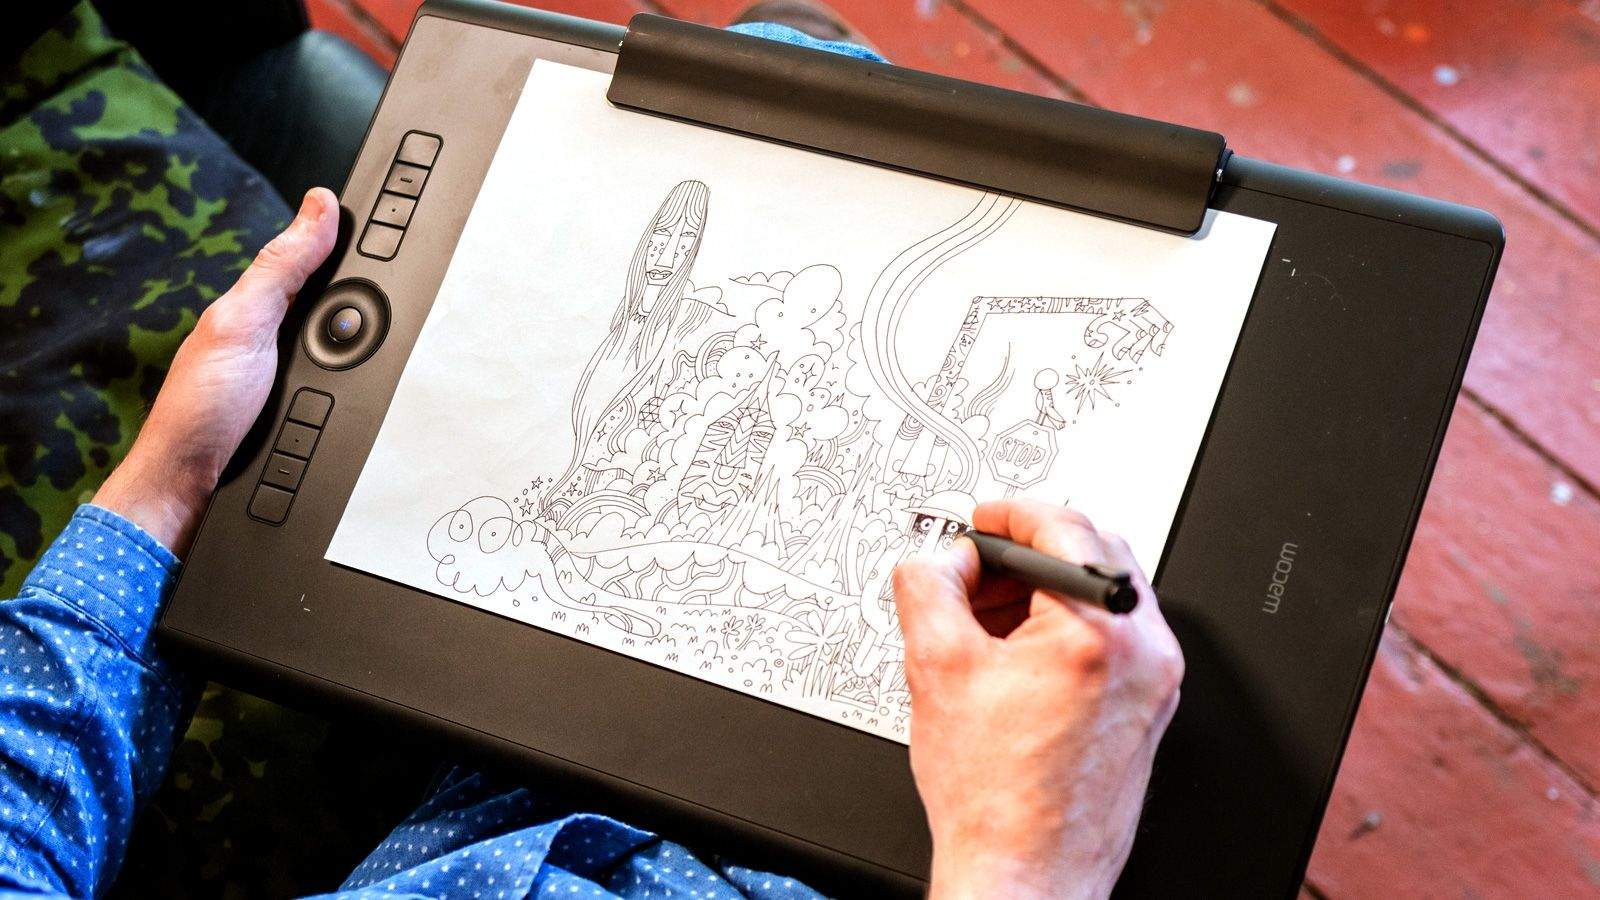 You Like To Draw On Paper And Screen With The New Wacom Intuos Bri Bang Ampamp Olufsen Beoplay H6 Premium Over Ear Headphones 2nd Gen Natural Pro Edition Tablet Can Do Both At Once